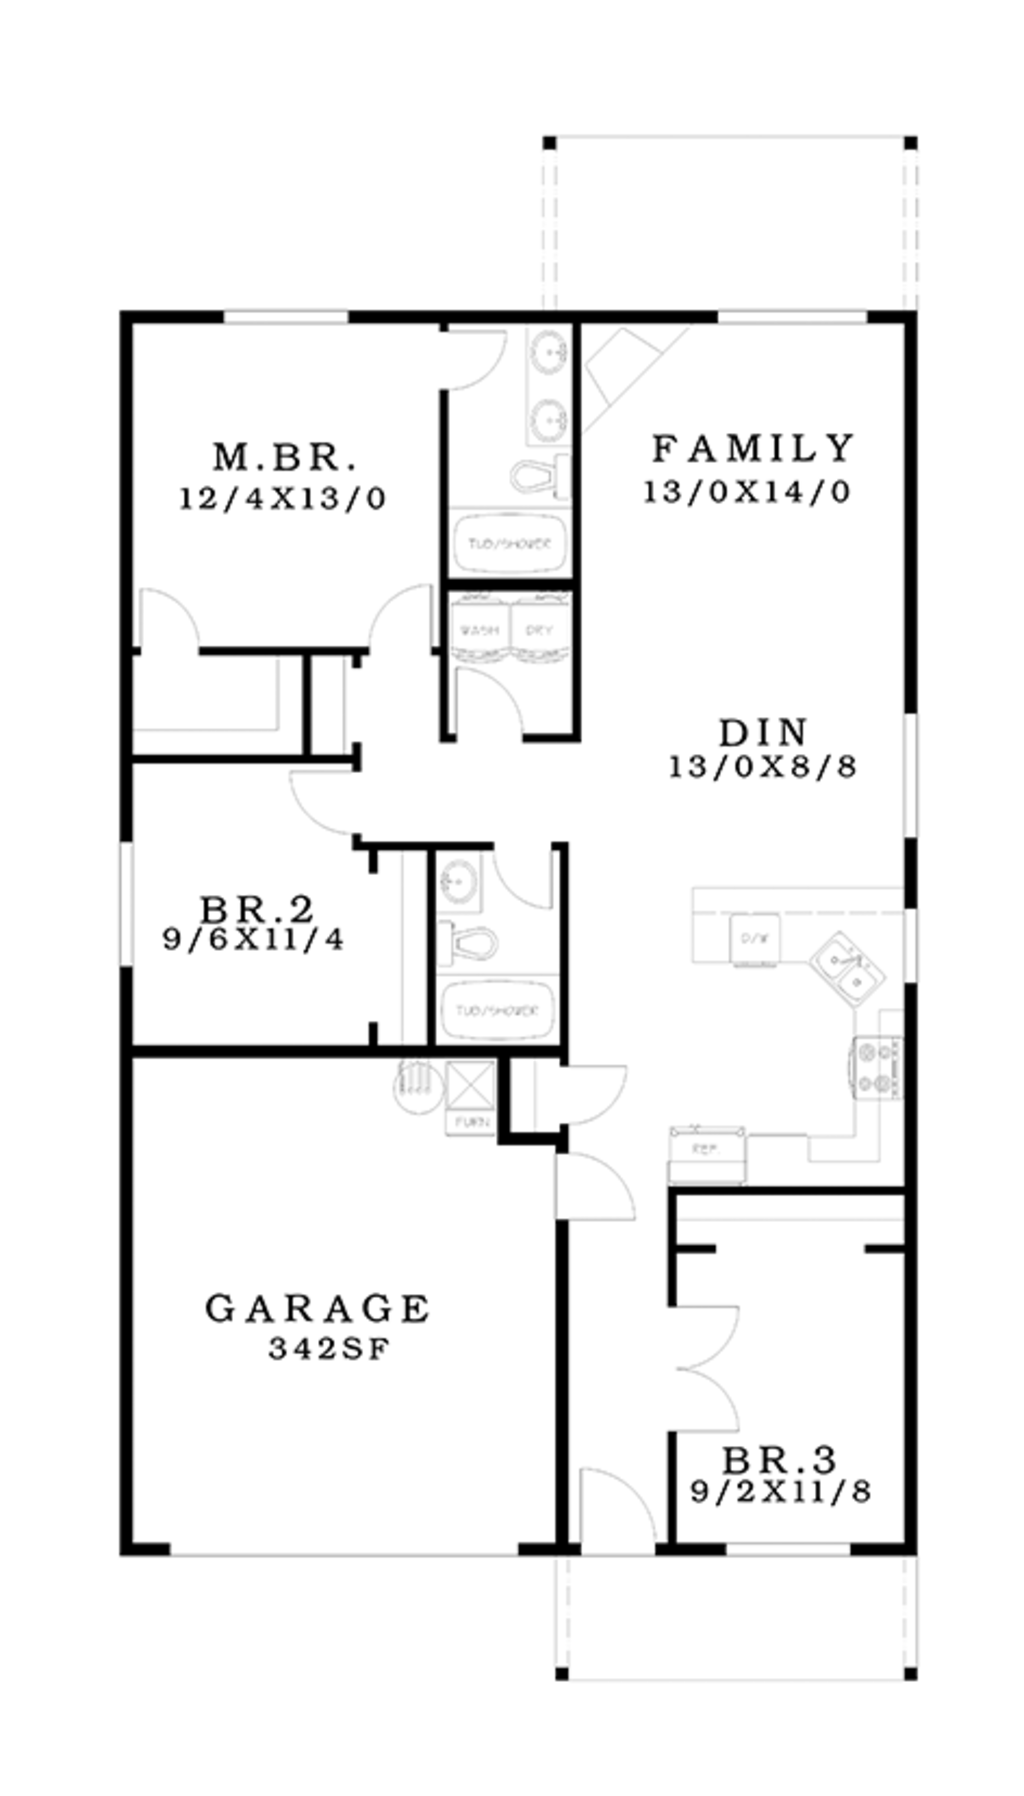 Ranch style house plan 3 beds 2 baths 1258 sq ft plan for Main floor